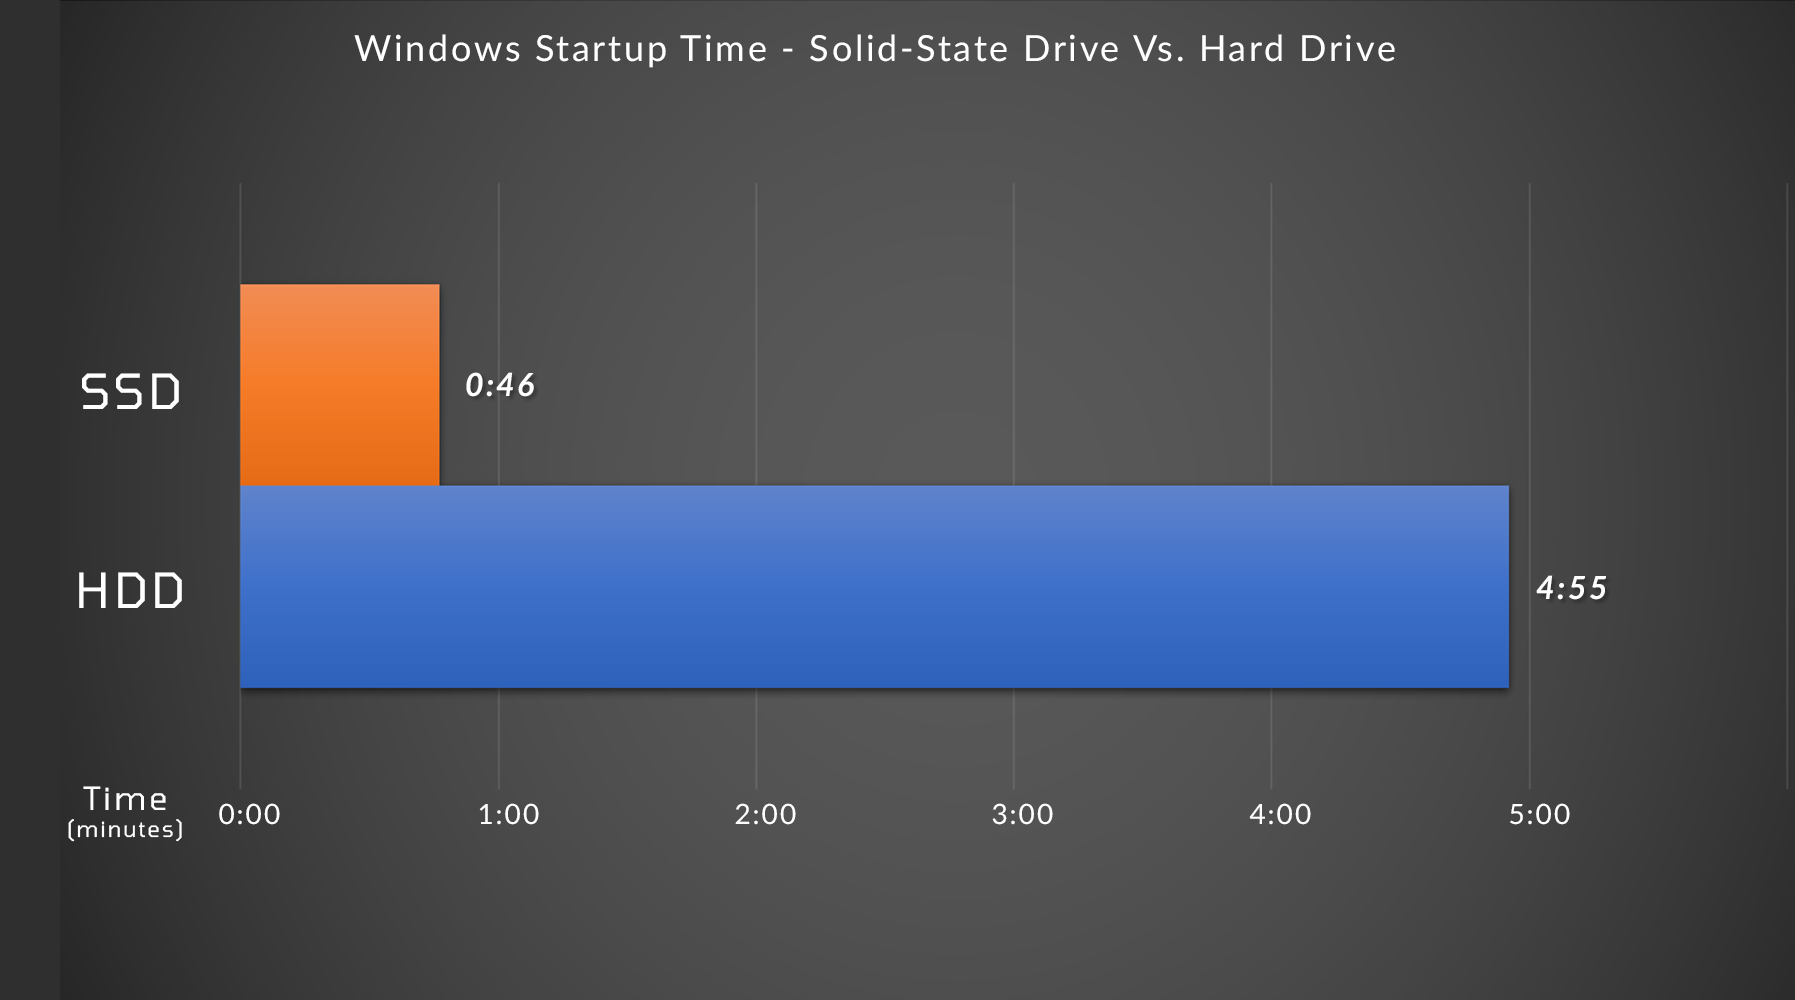 graph of the comparison between solid-state and magnetic hard drive showing the startup time in Windows 10 - the solid state drive is 46 seconds while the HDD is 4 minutes 55 seconds.